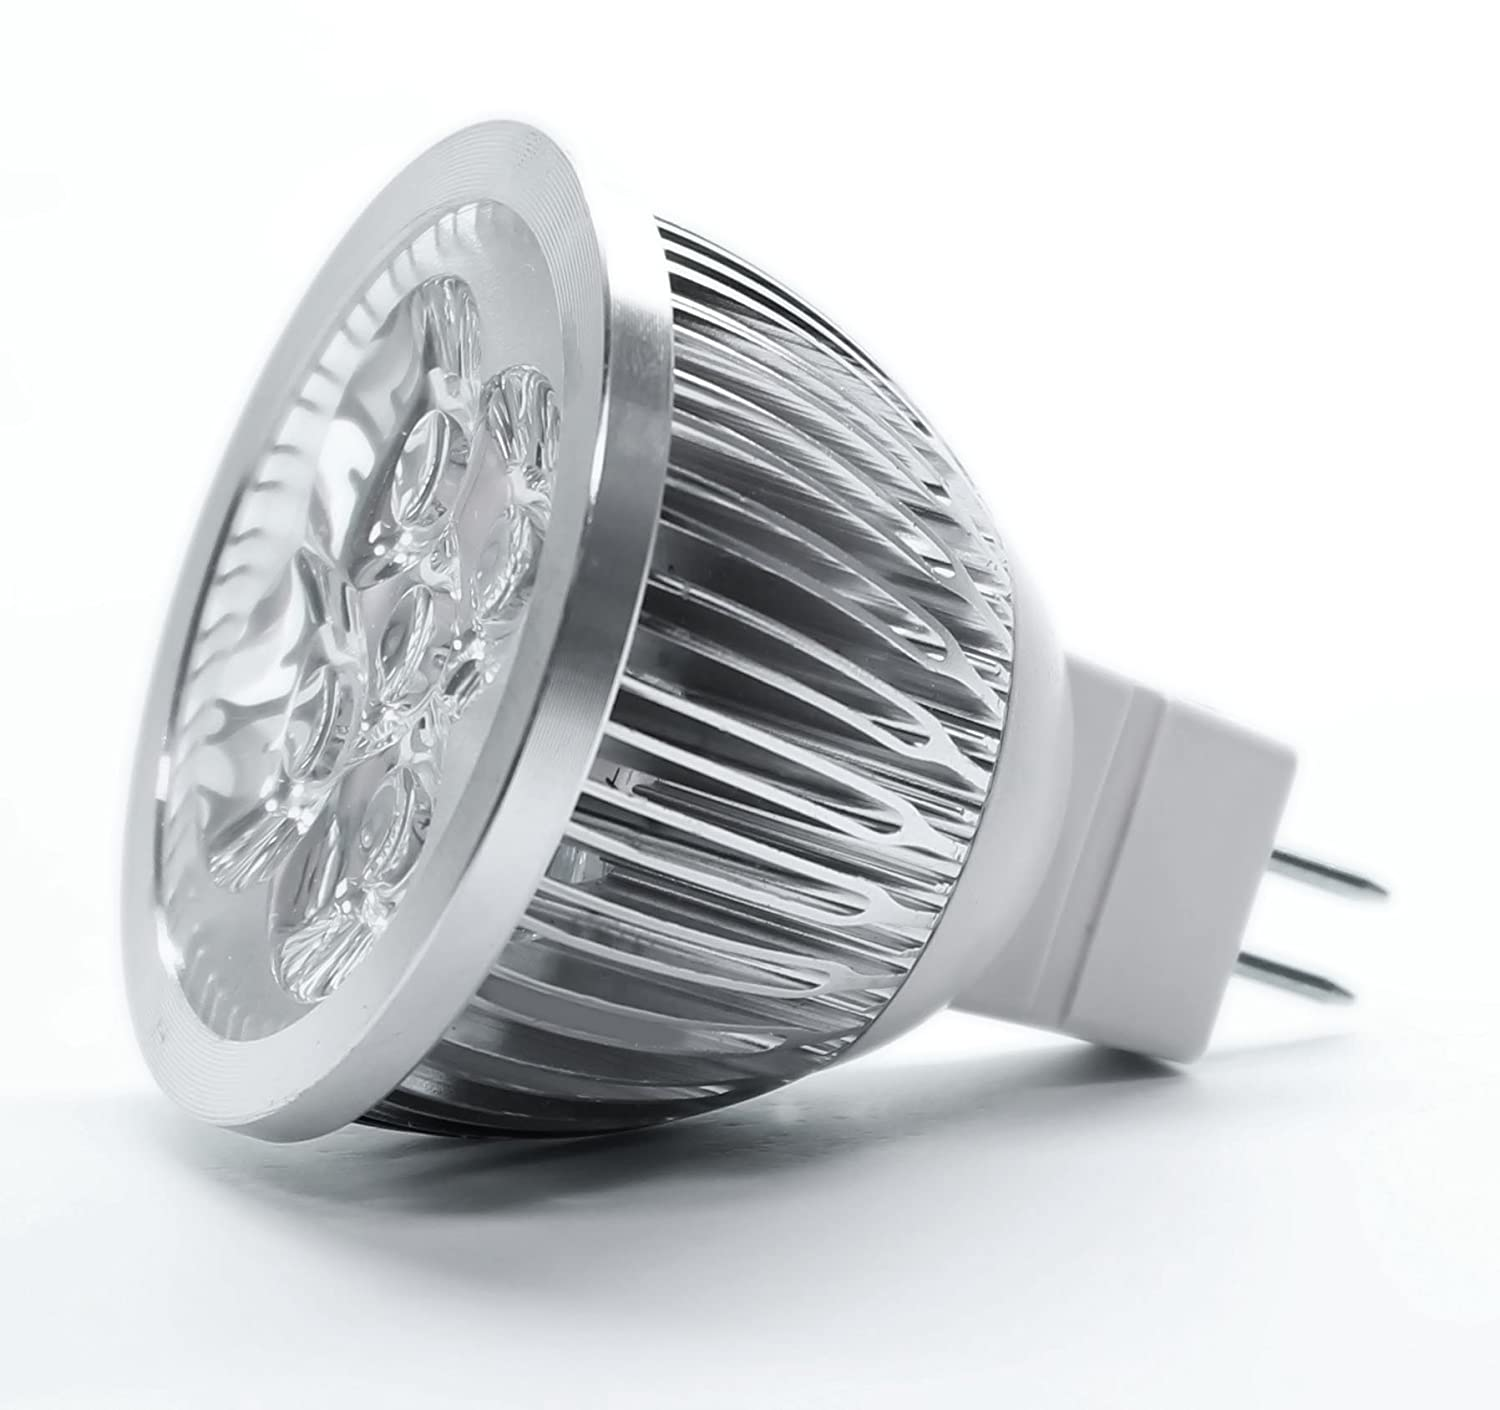 Led Spotlight Light Bulbs: Dimmable 12V 4W MR16 LED Light Bulb